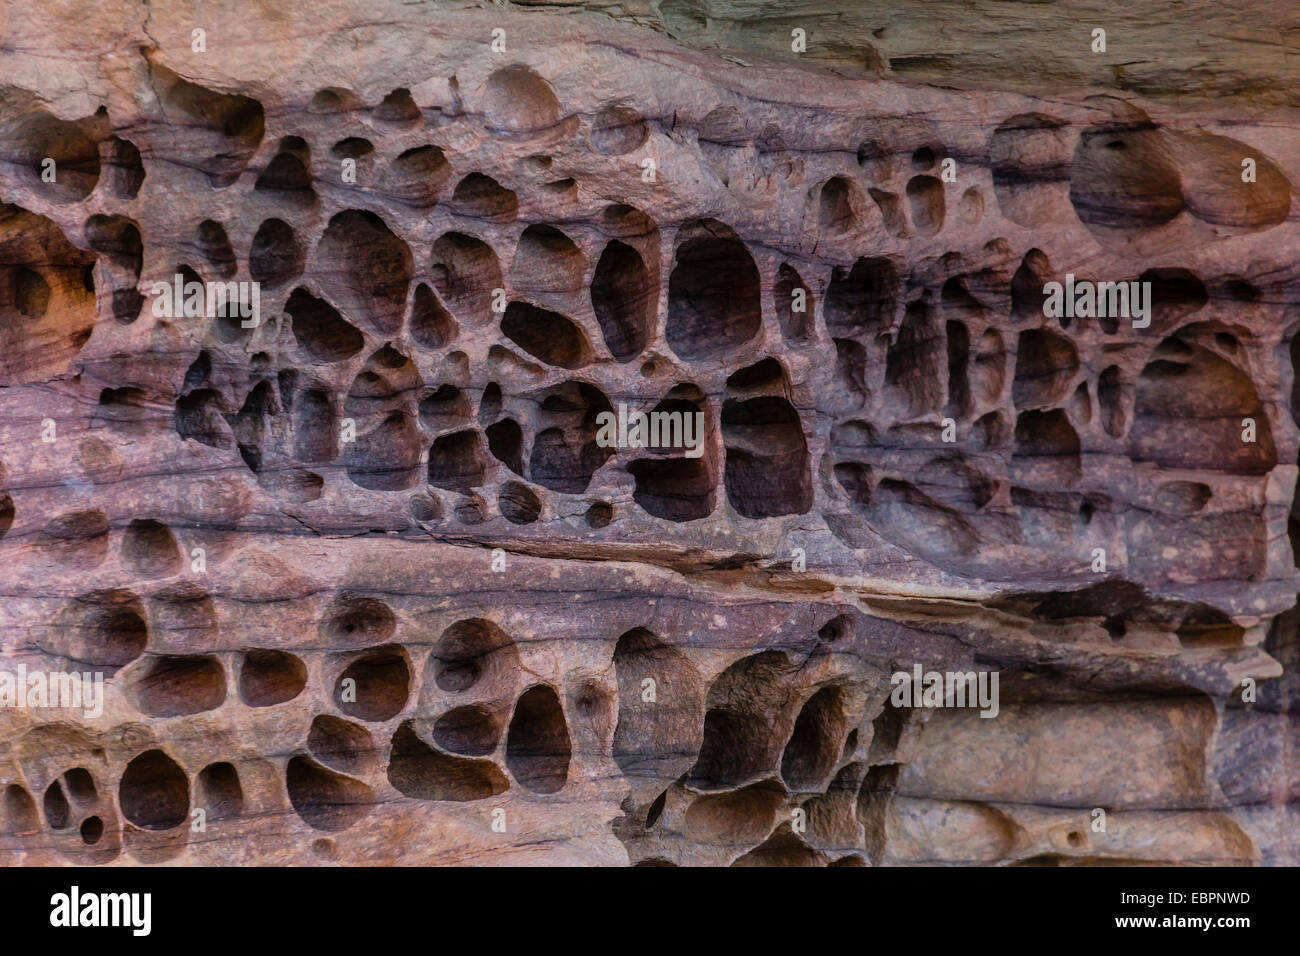 Detail of wind and water erosion in the sandstone cliffs of the King George River, Koolama Bay, Kimberley, Australia - Stock Image